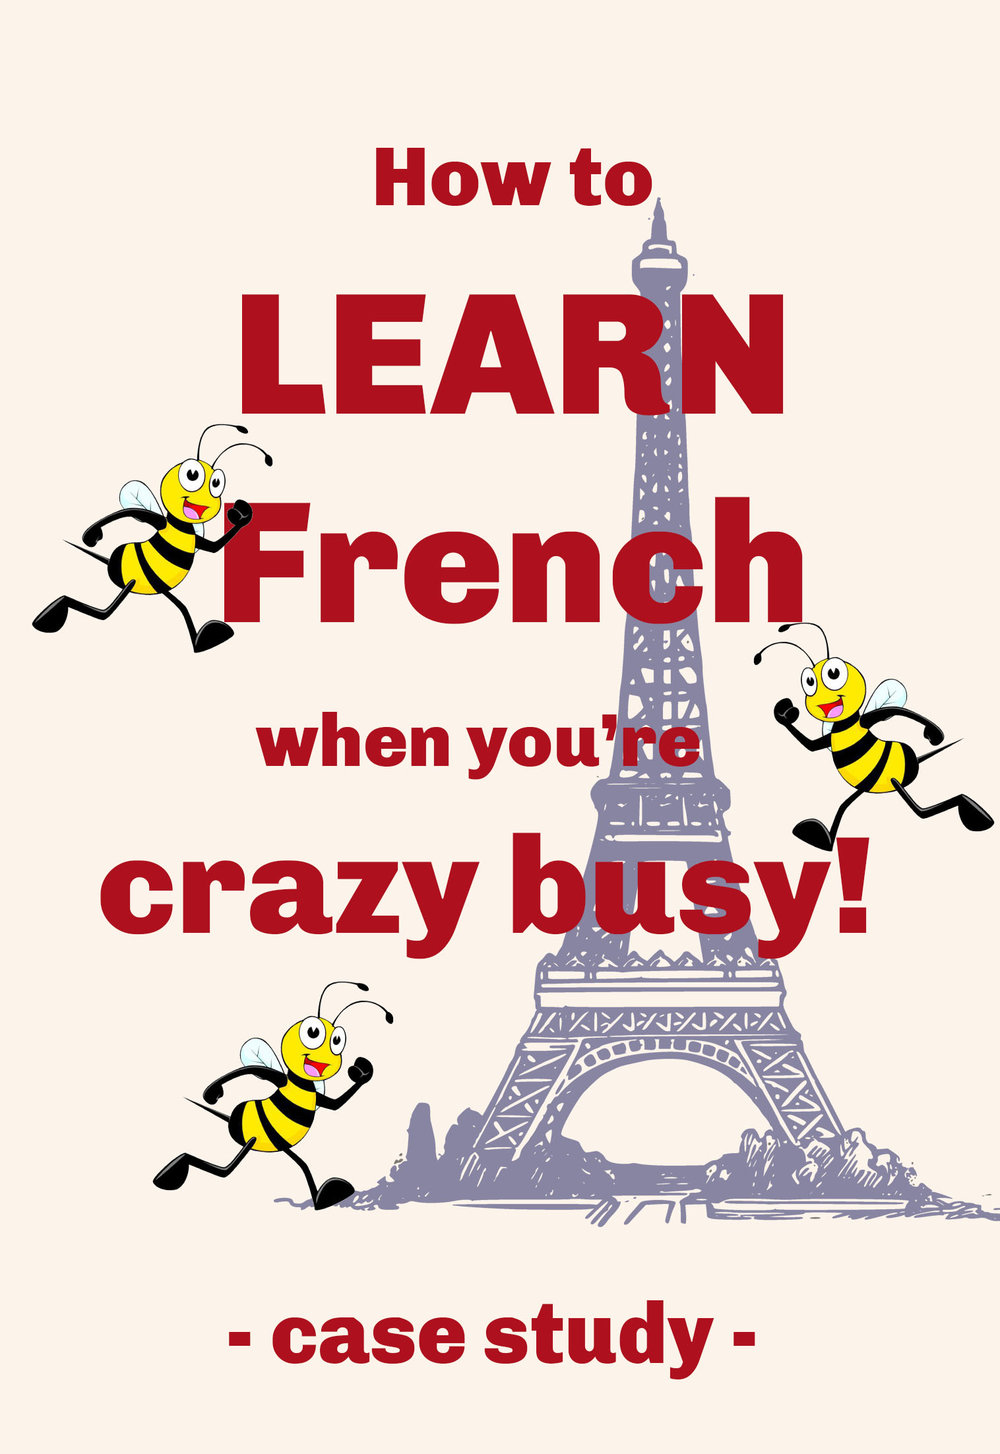 How to learn French fast when you're crazy busy